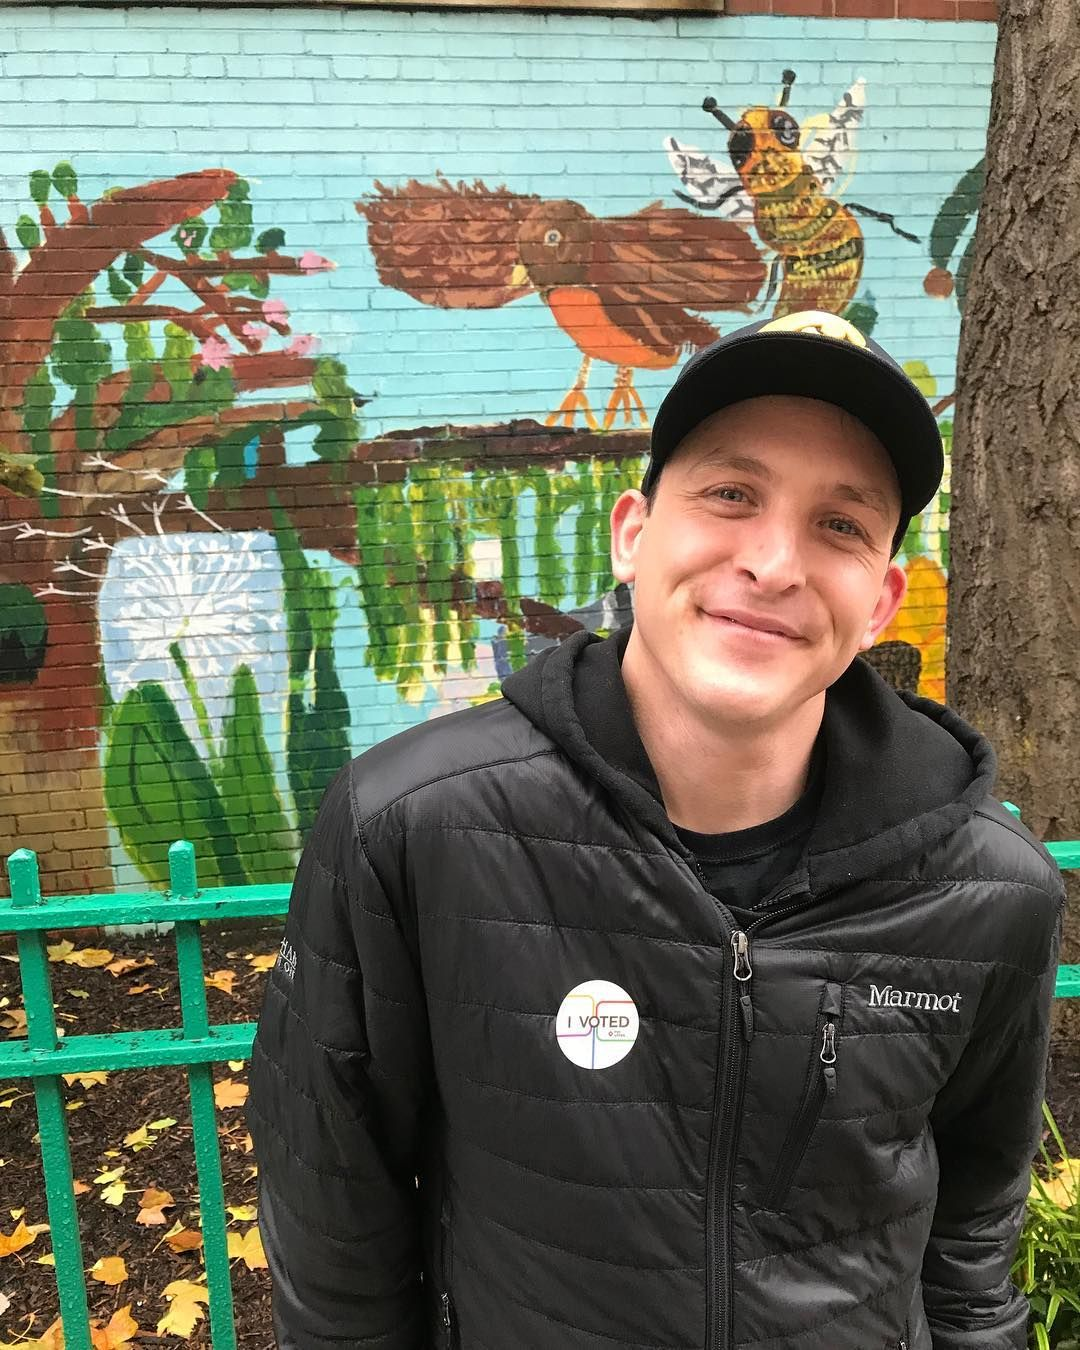 Image may contain: You season 2 cast, You, Netflix, Robin Lord Taylor, Will, season 2, cast, list, Portrait, Photo, Photography, Painting, Mural, Art, Tree, Plant, Wall, Outdoors, Face, Human, Person, Clothing, Apparel, Coat, Jacket